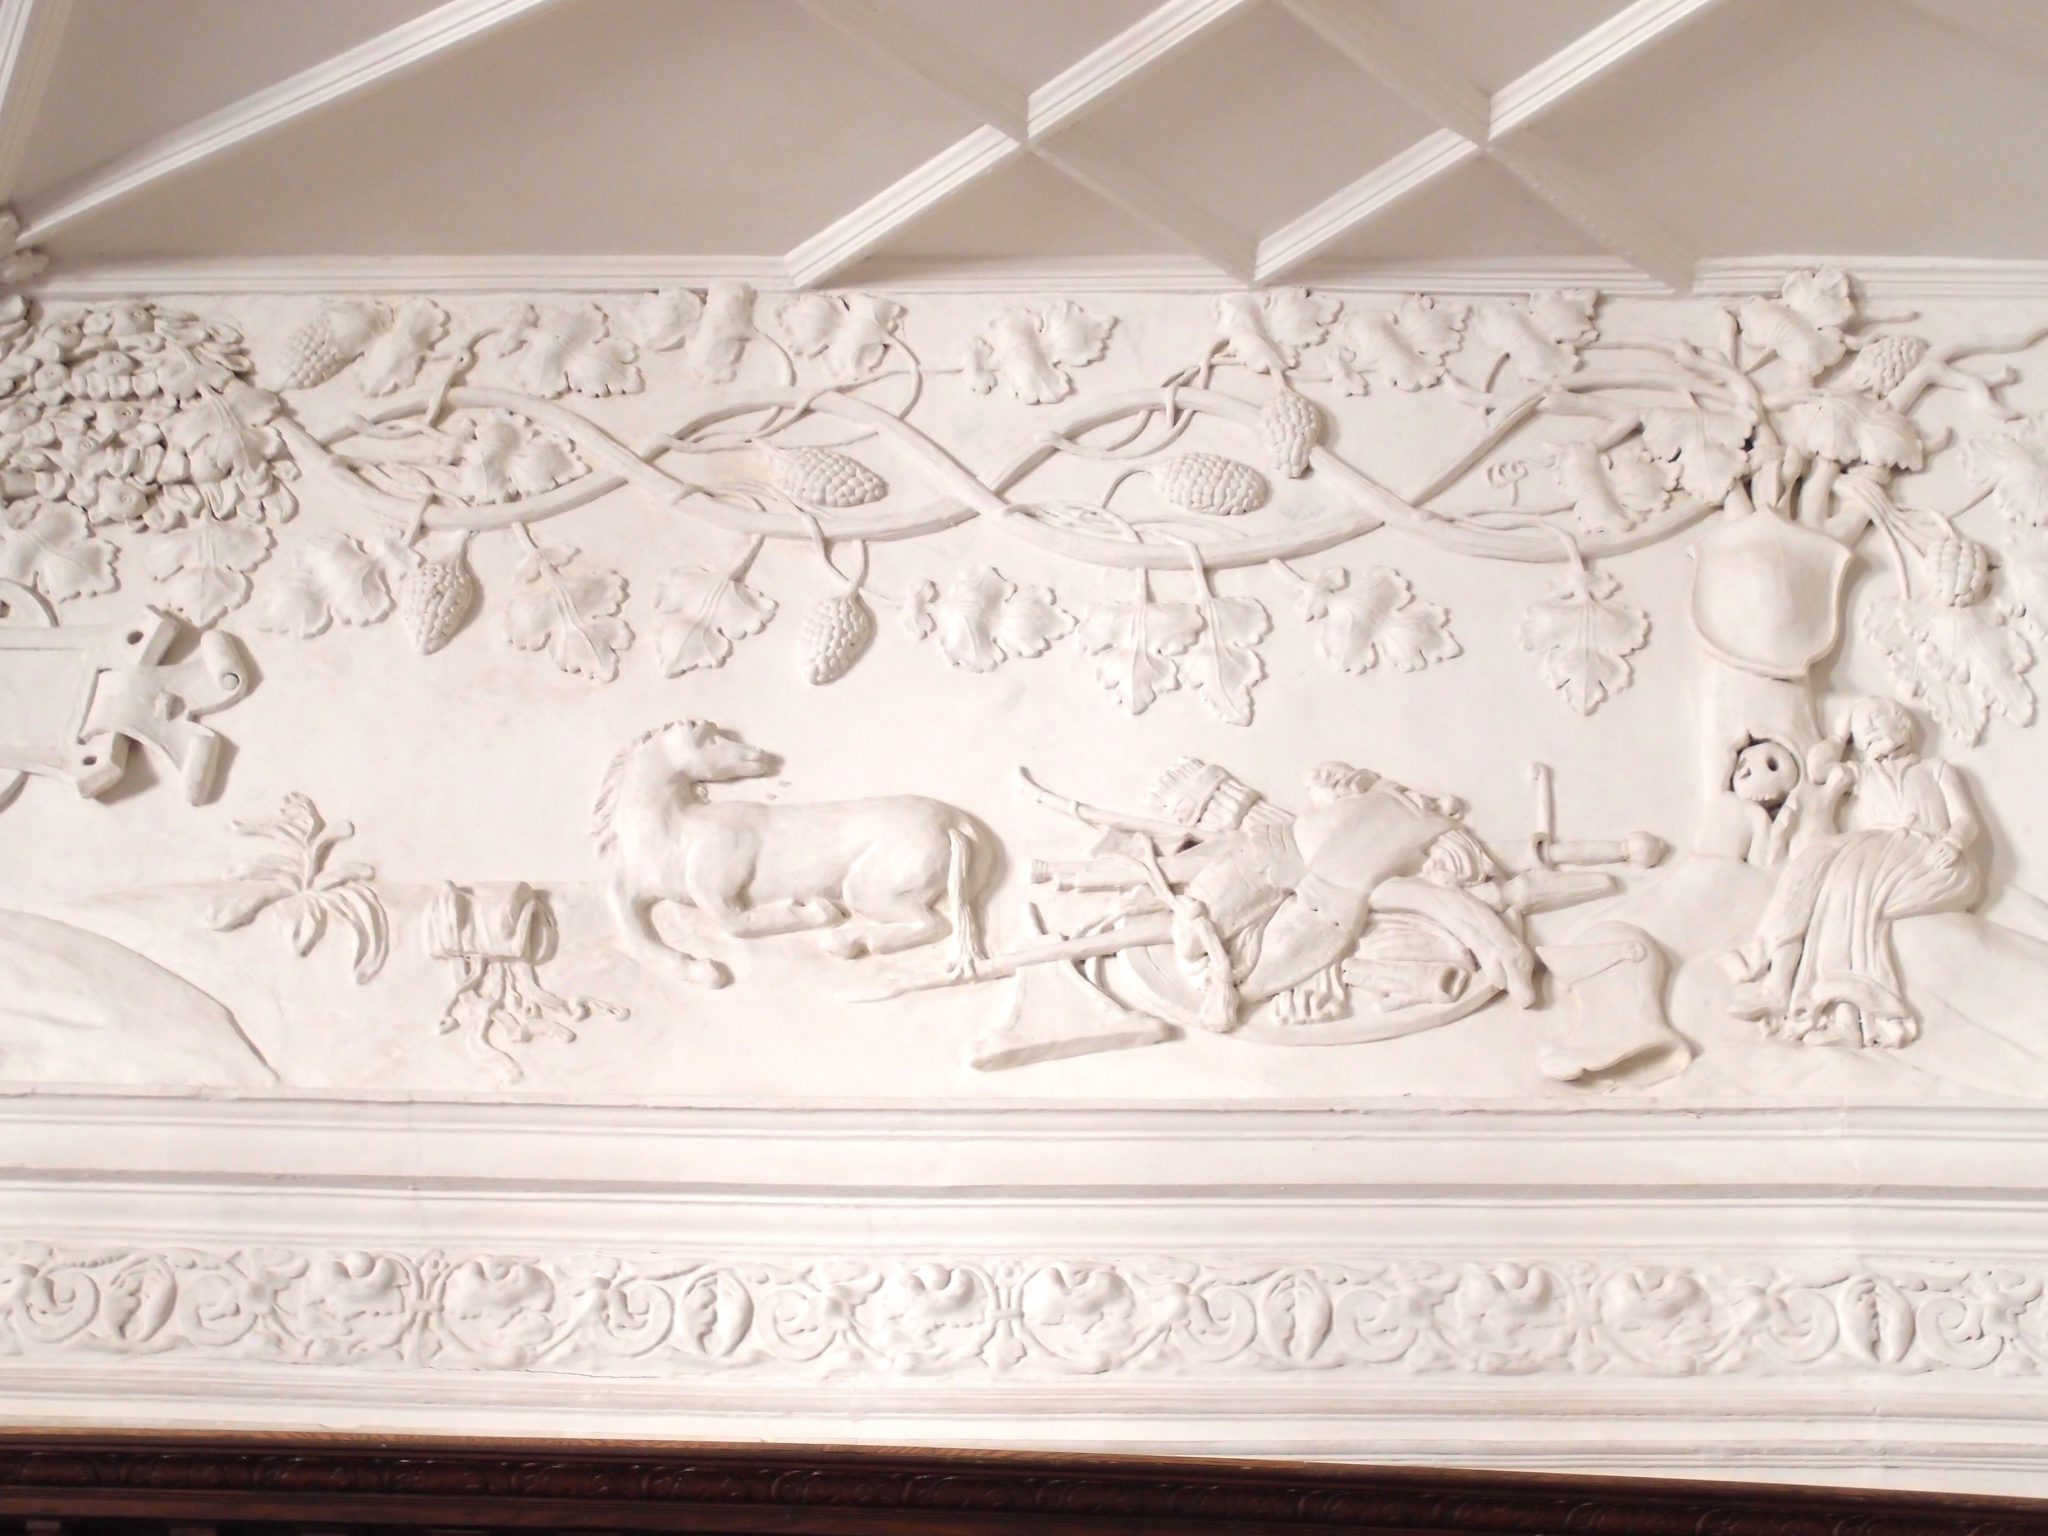 The Great Hall's upper walls are embellished with allegorical scenes. These plasterwork decorations have survived, exactly as they were, ever since Sir Richard Grenville's occupancy of the Abbey.